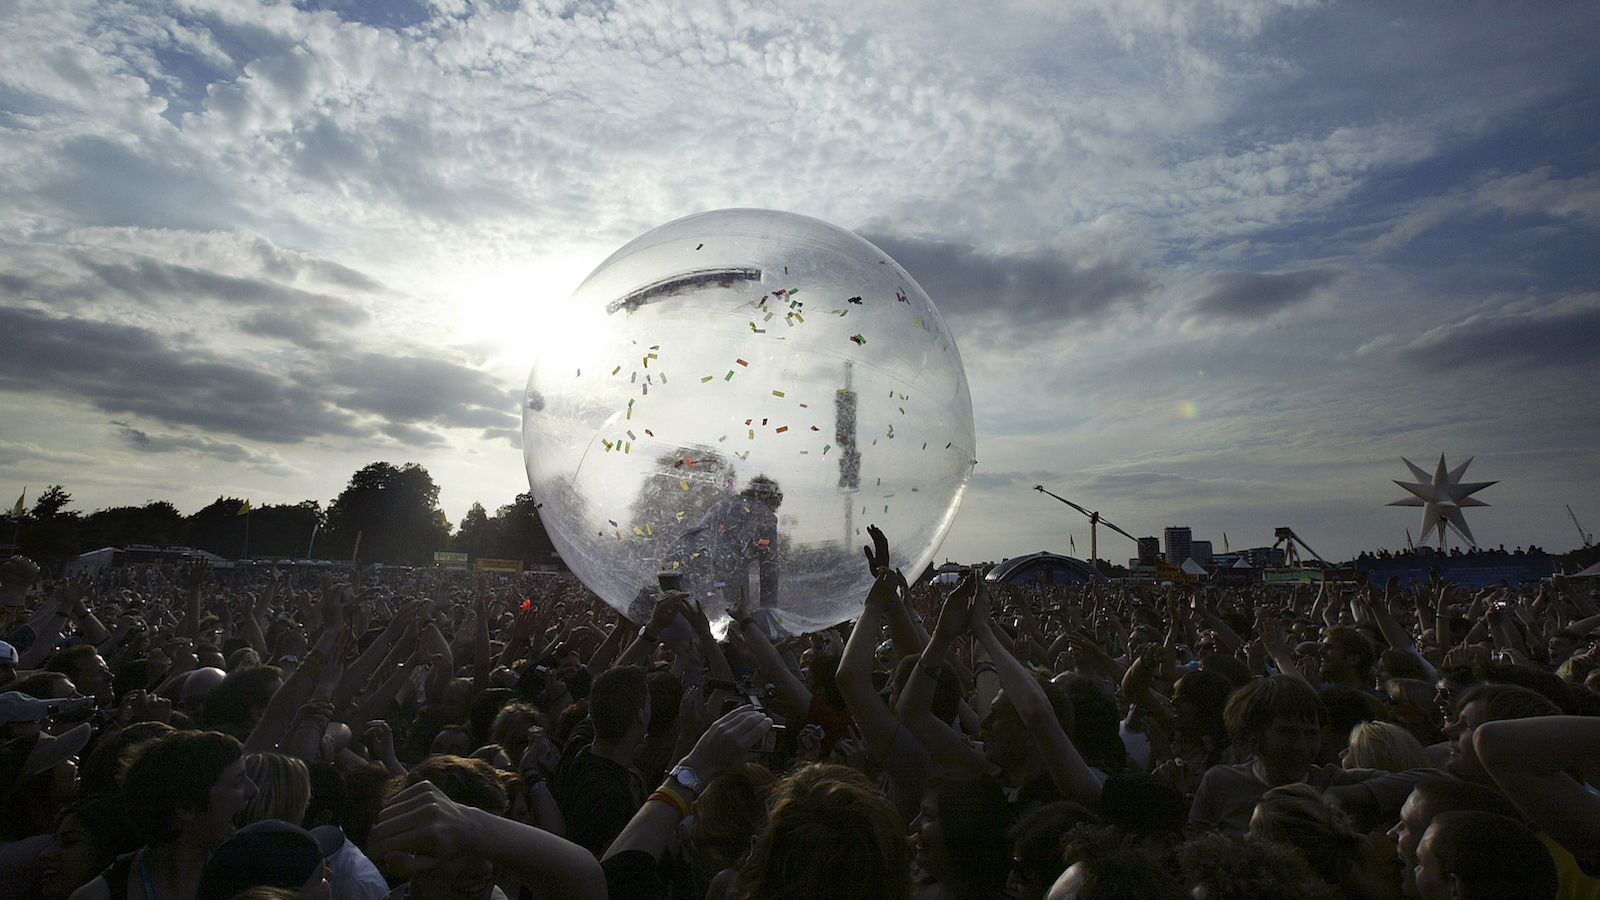 Wayne Coyne of Flaming Lips in a bubble